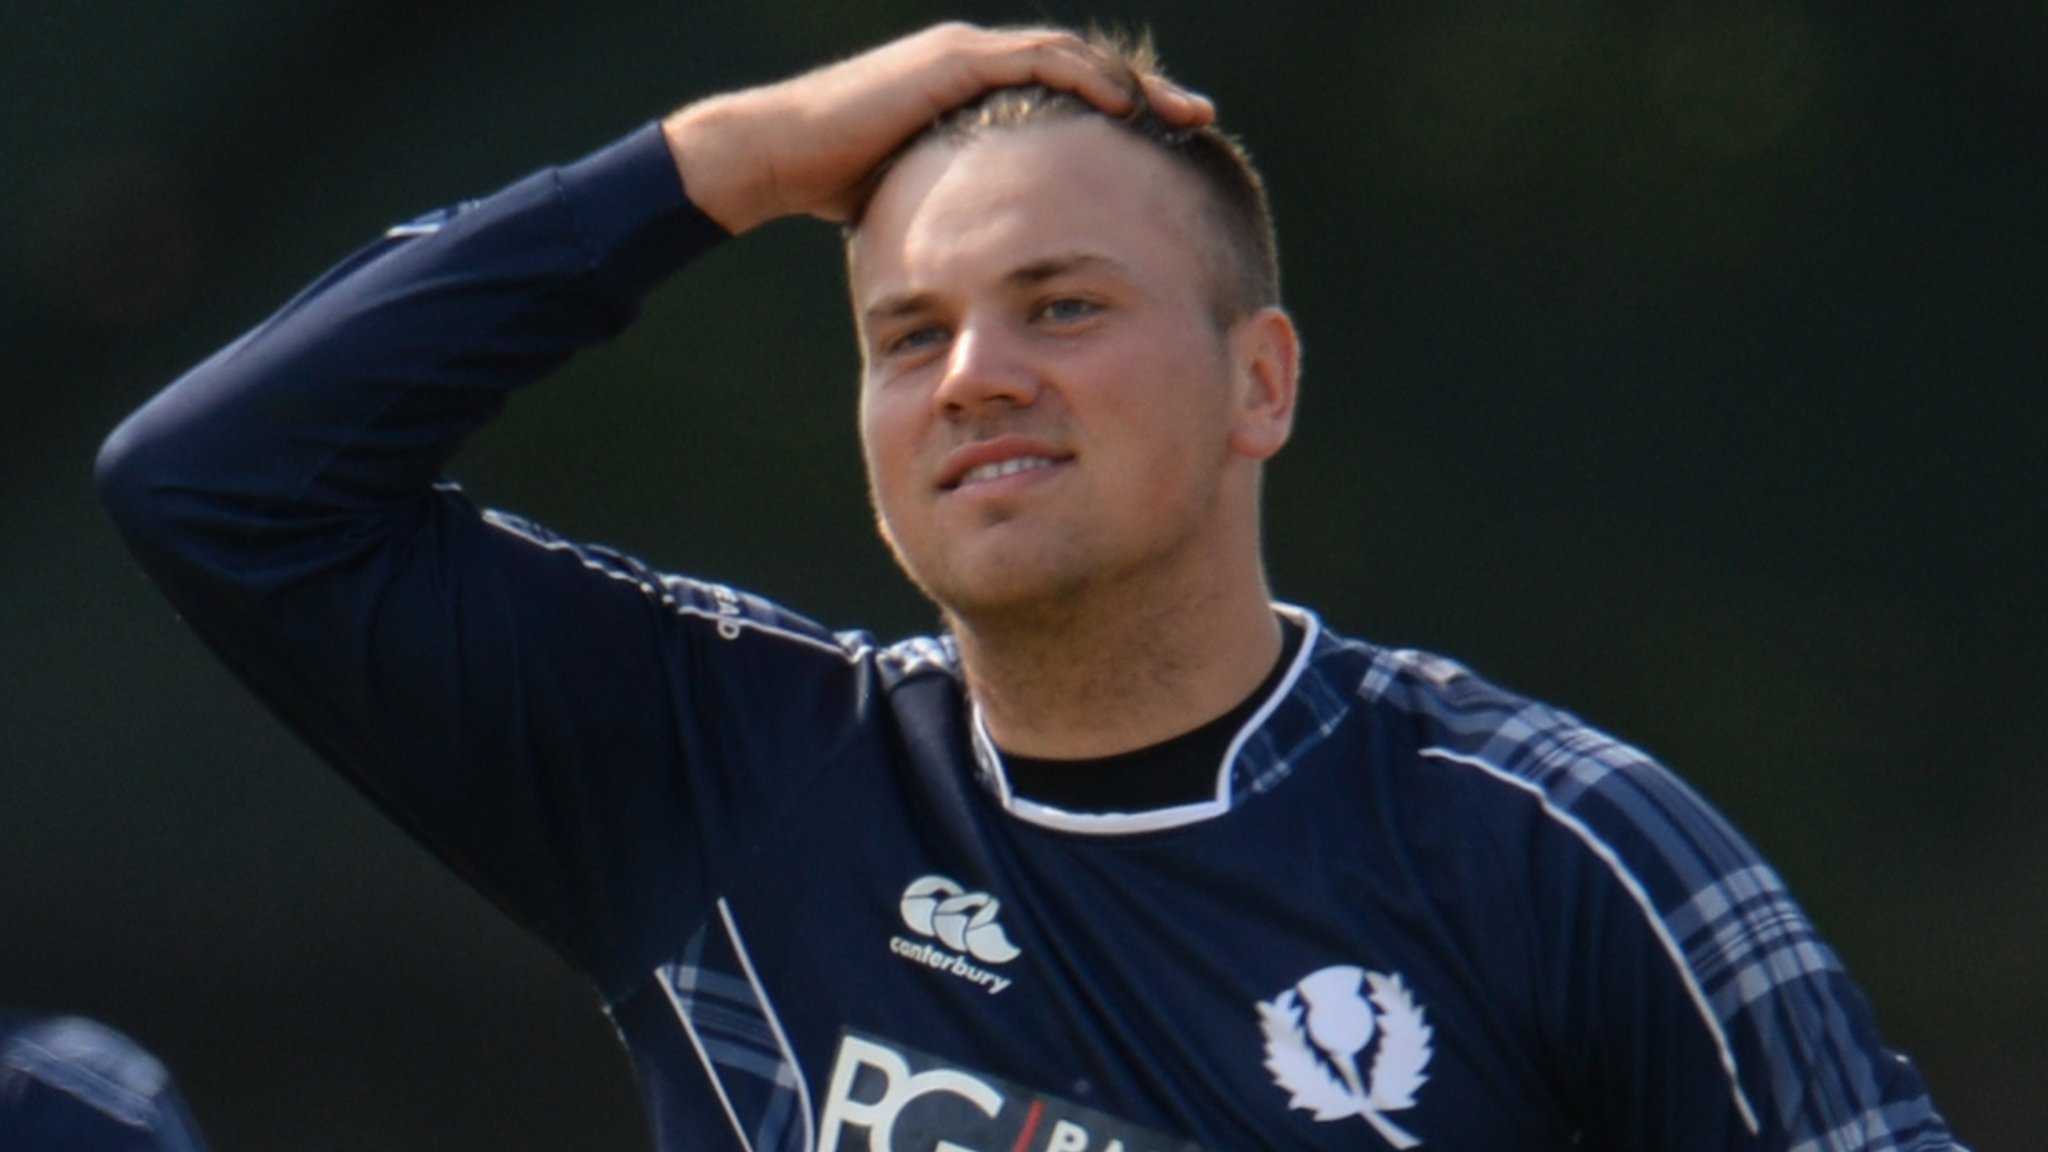 Scotland beaten by Oman - a day after skittling them for 24